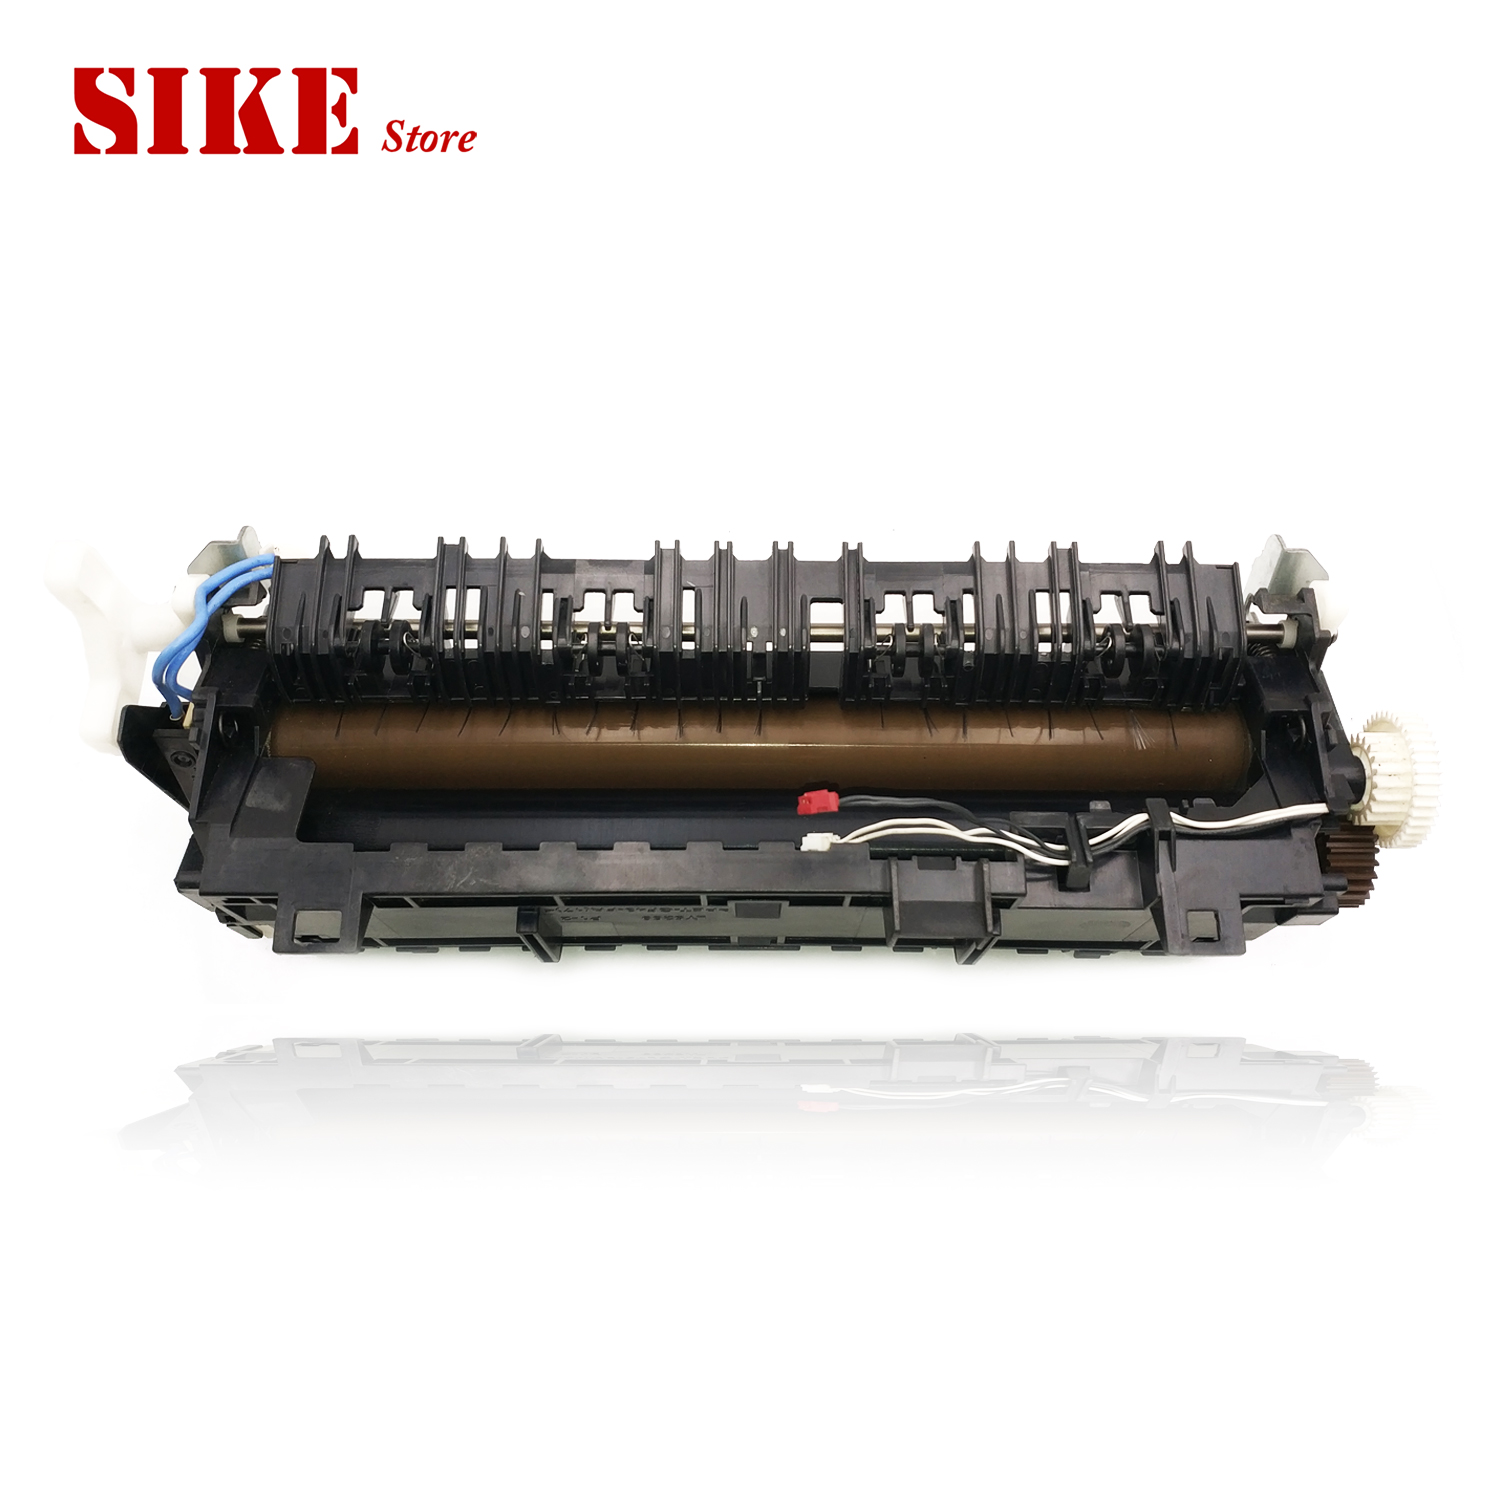 Fuser Unit Assy For Brother DCP-8150DN DCP-8250DN DCP-8150 DCP-8250 DCP 8150 820 Fuser Assembly LY5610001 LU9215001Fuser Unit Assy For Brother DCP-8150DN DCP-8250DN DCP-8150 DCP-8250 DCP 8150 820 Fuser Assembly LY5610001 LU9215001